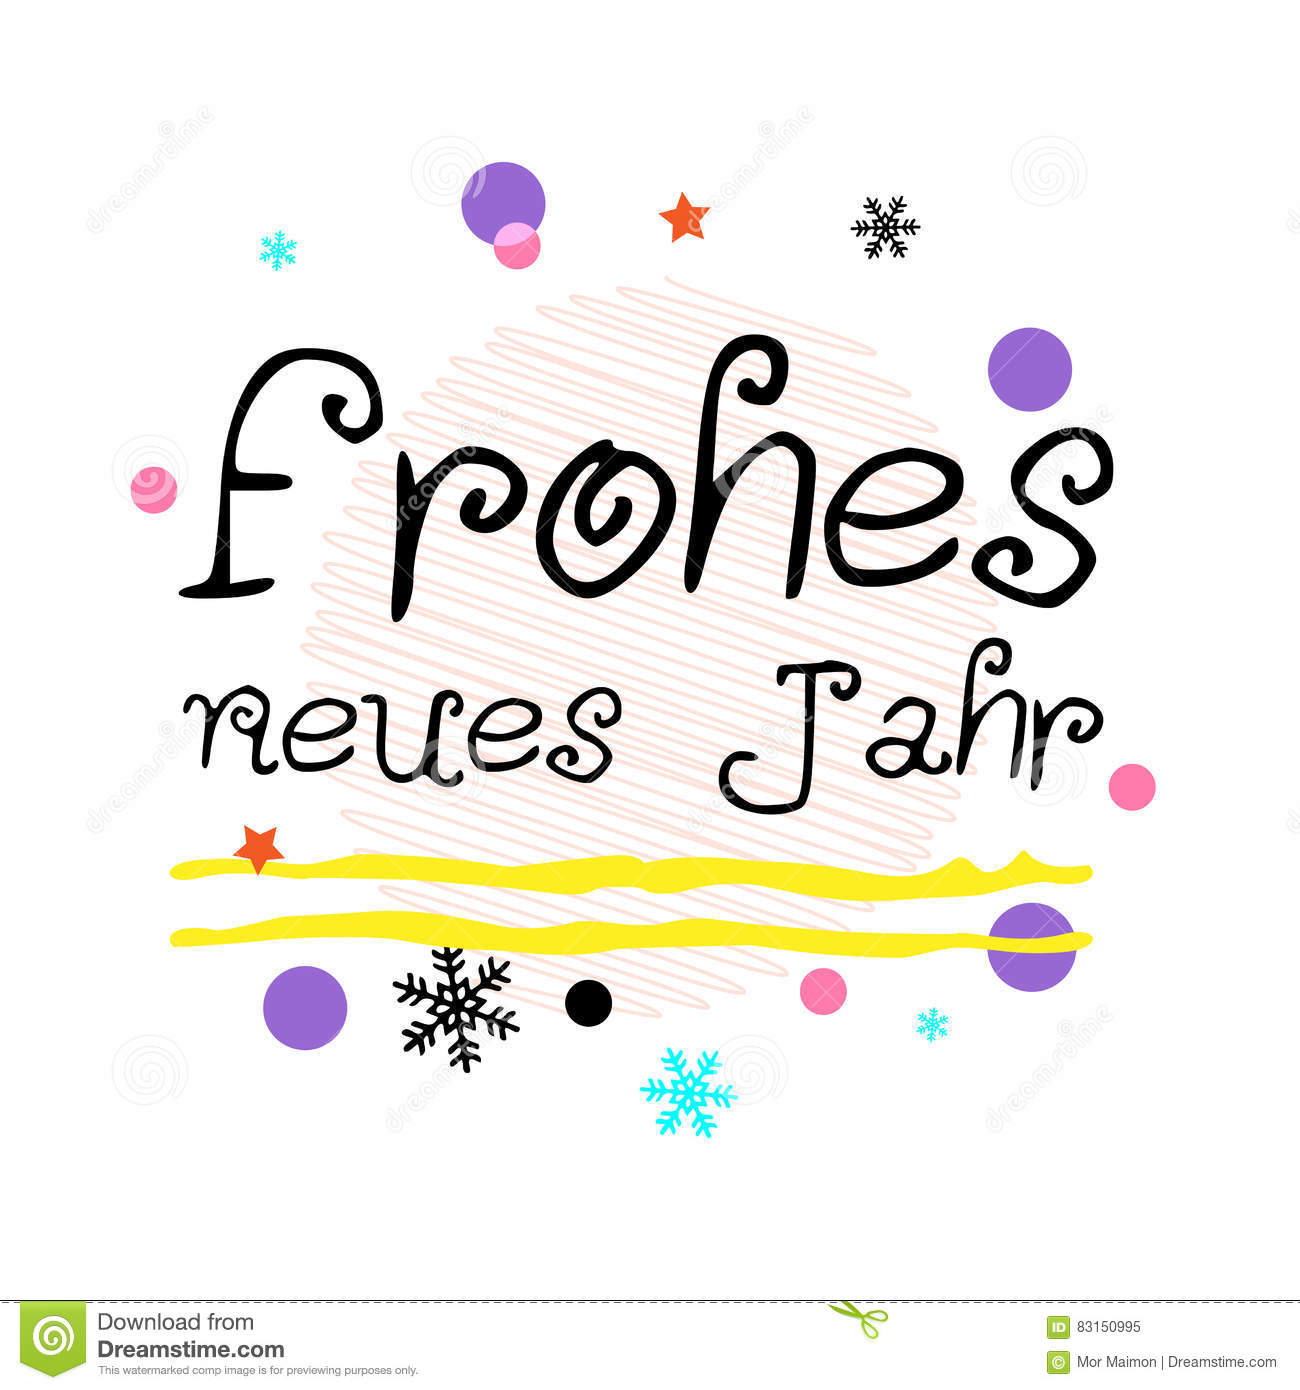 Frohes Neues Jahr. Happy New Year German Greeting. Black Typographic ...